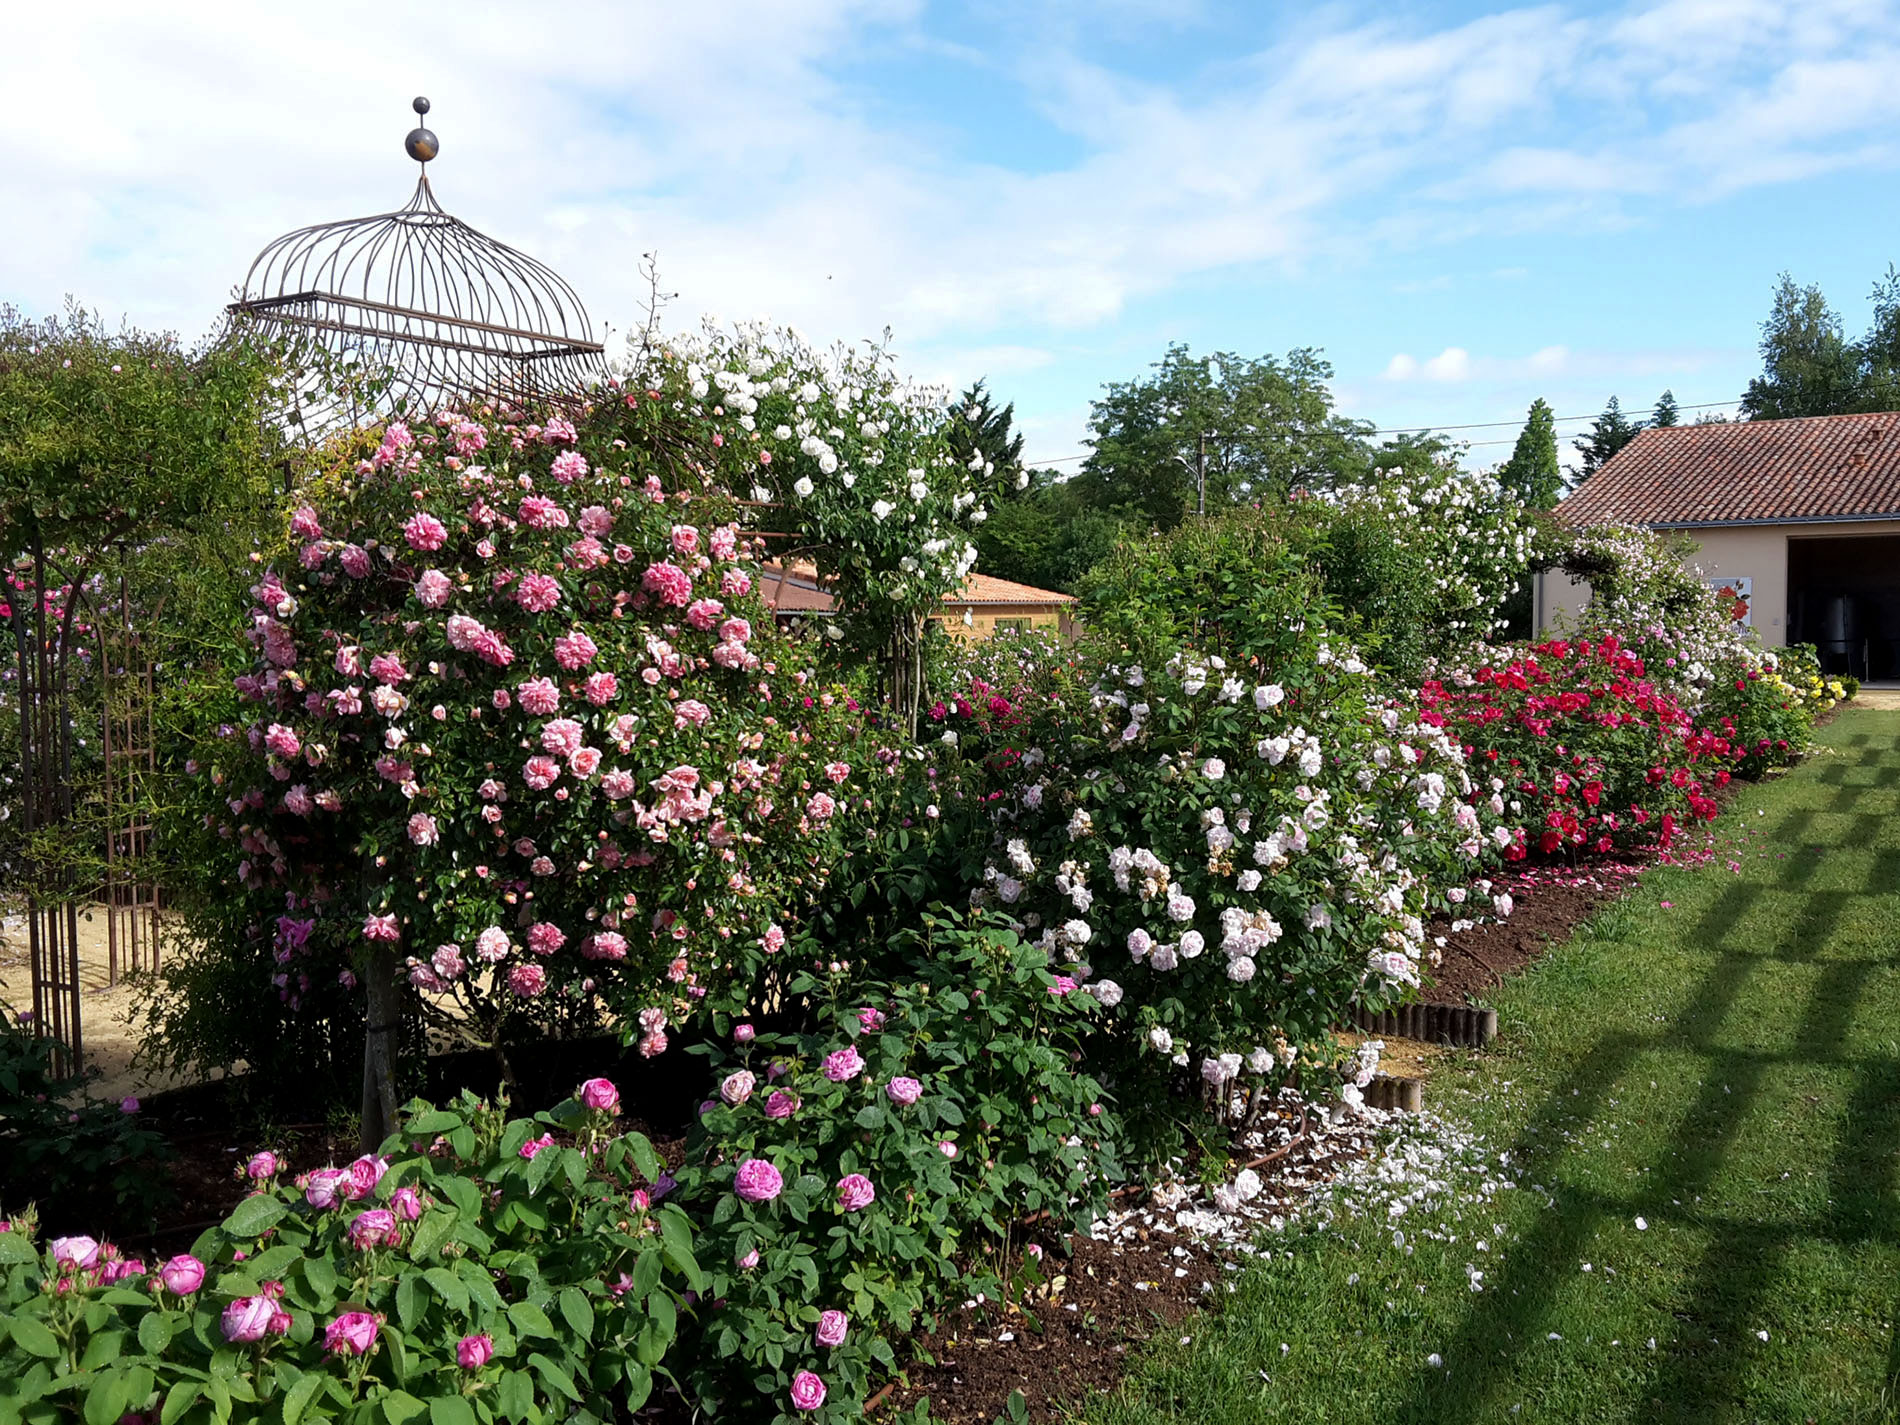 The Rose Garden : Visit the Rose Garden of Rose Land - Sightseeing